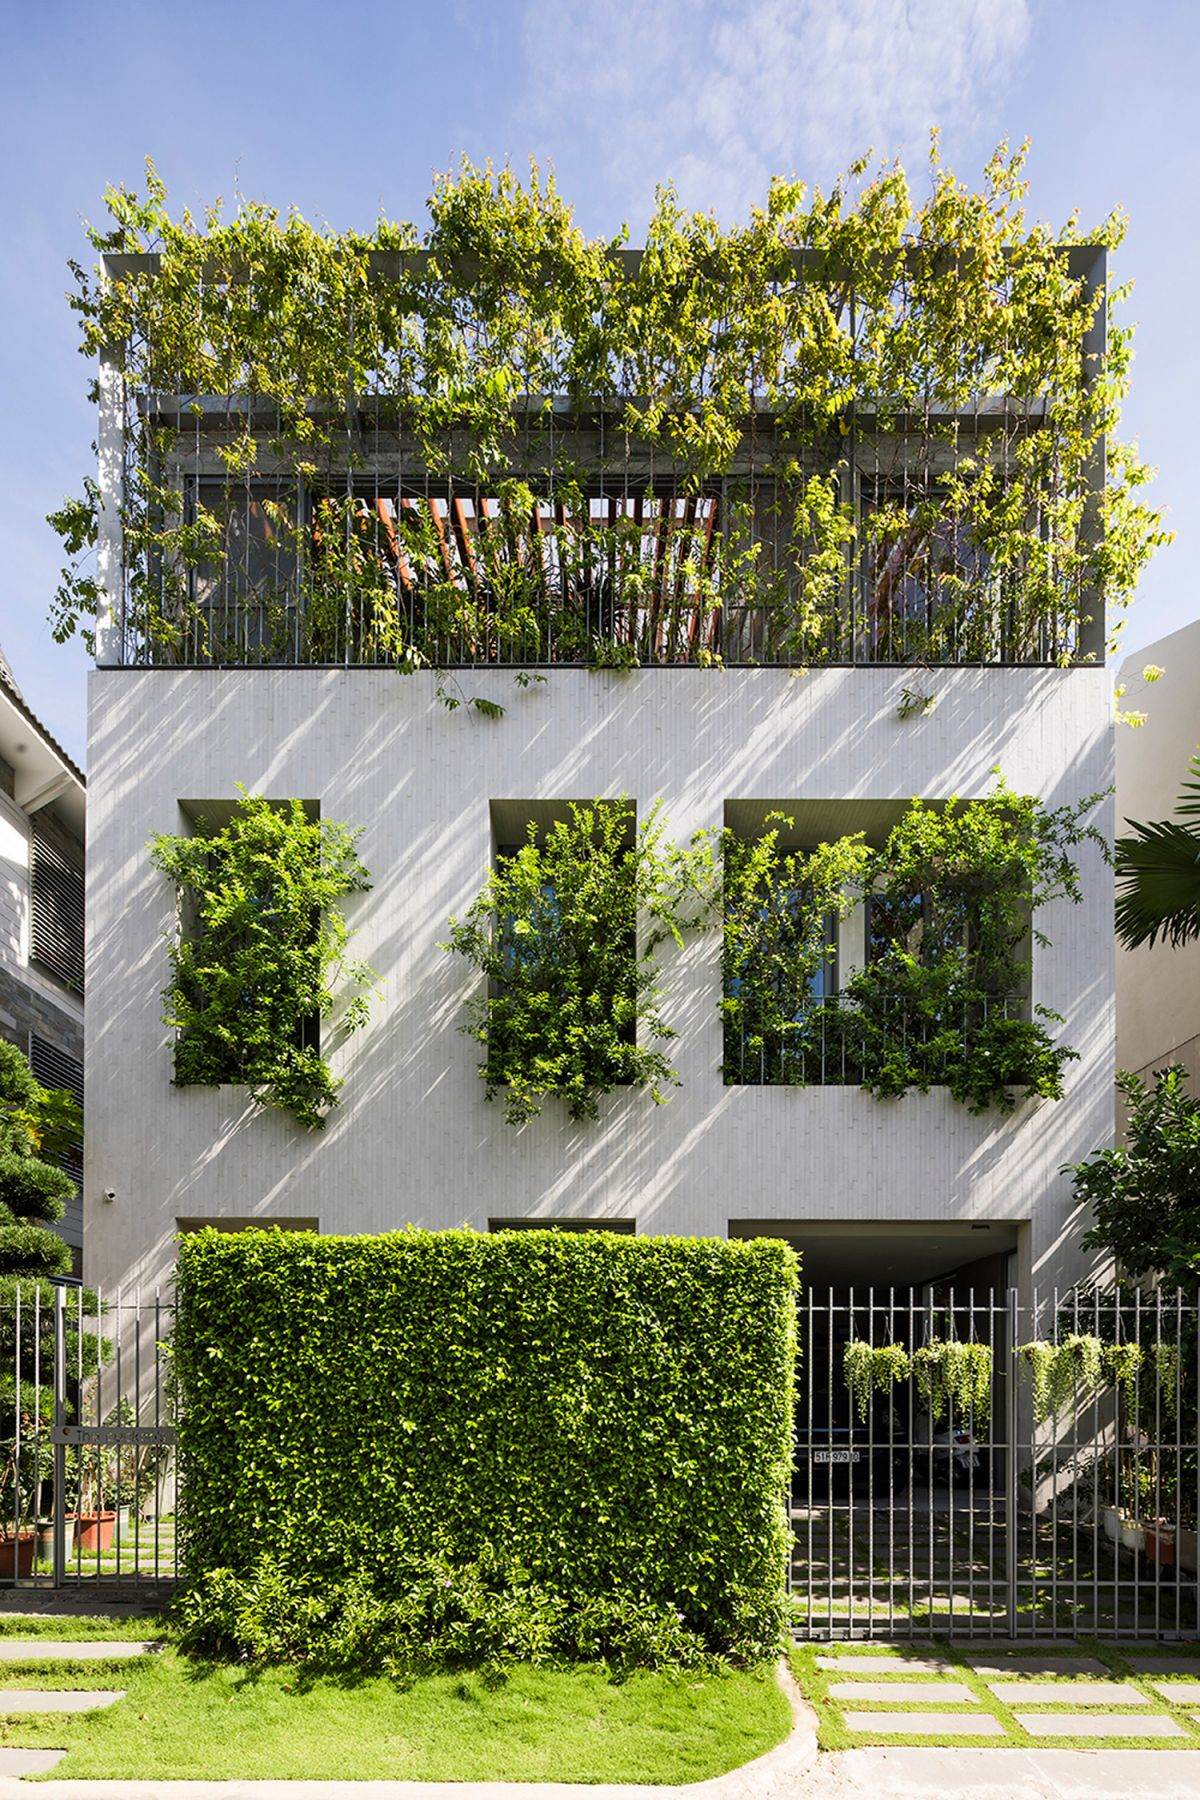 1569316431 882 amazing living facades that take over entire buildings - Amazing Living Facades That Take Over Entire Buildings